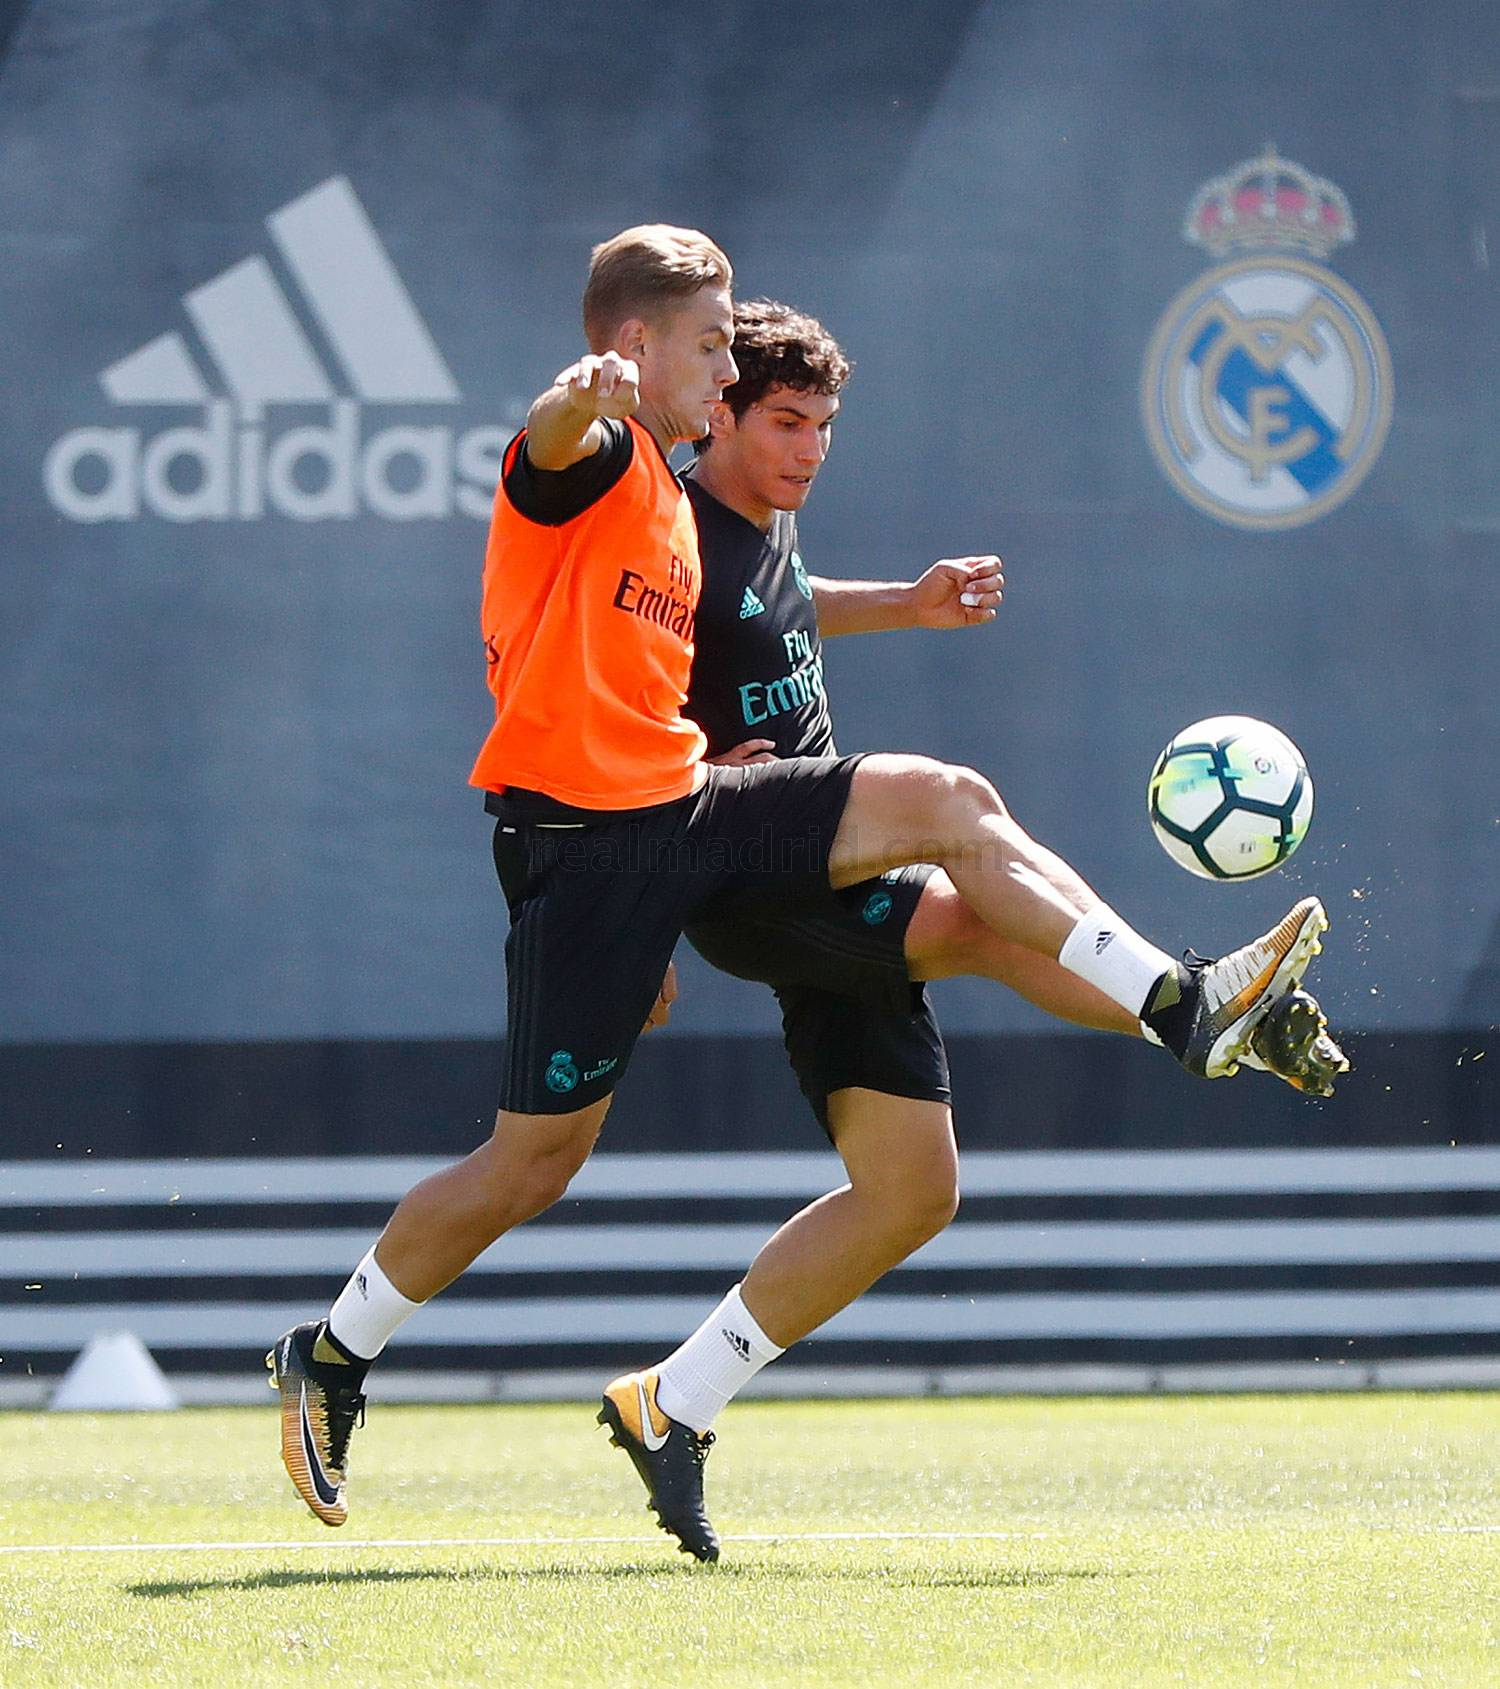 Real Madrid - Entrenamiento del Real Madrid - 31-08-2017